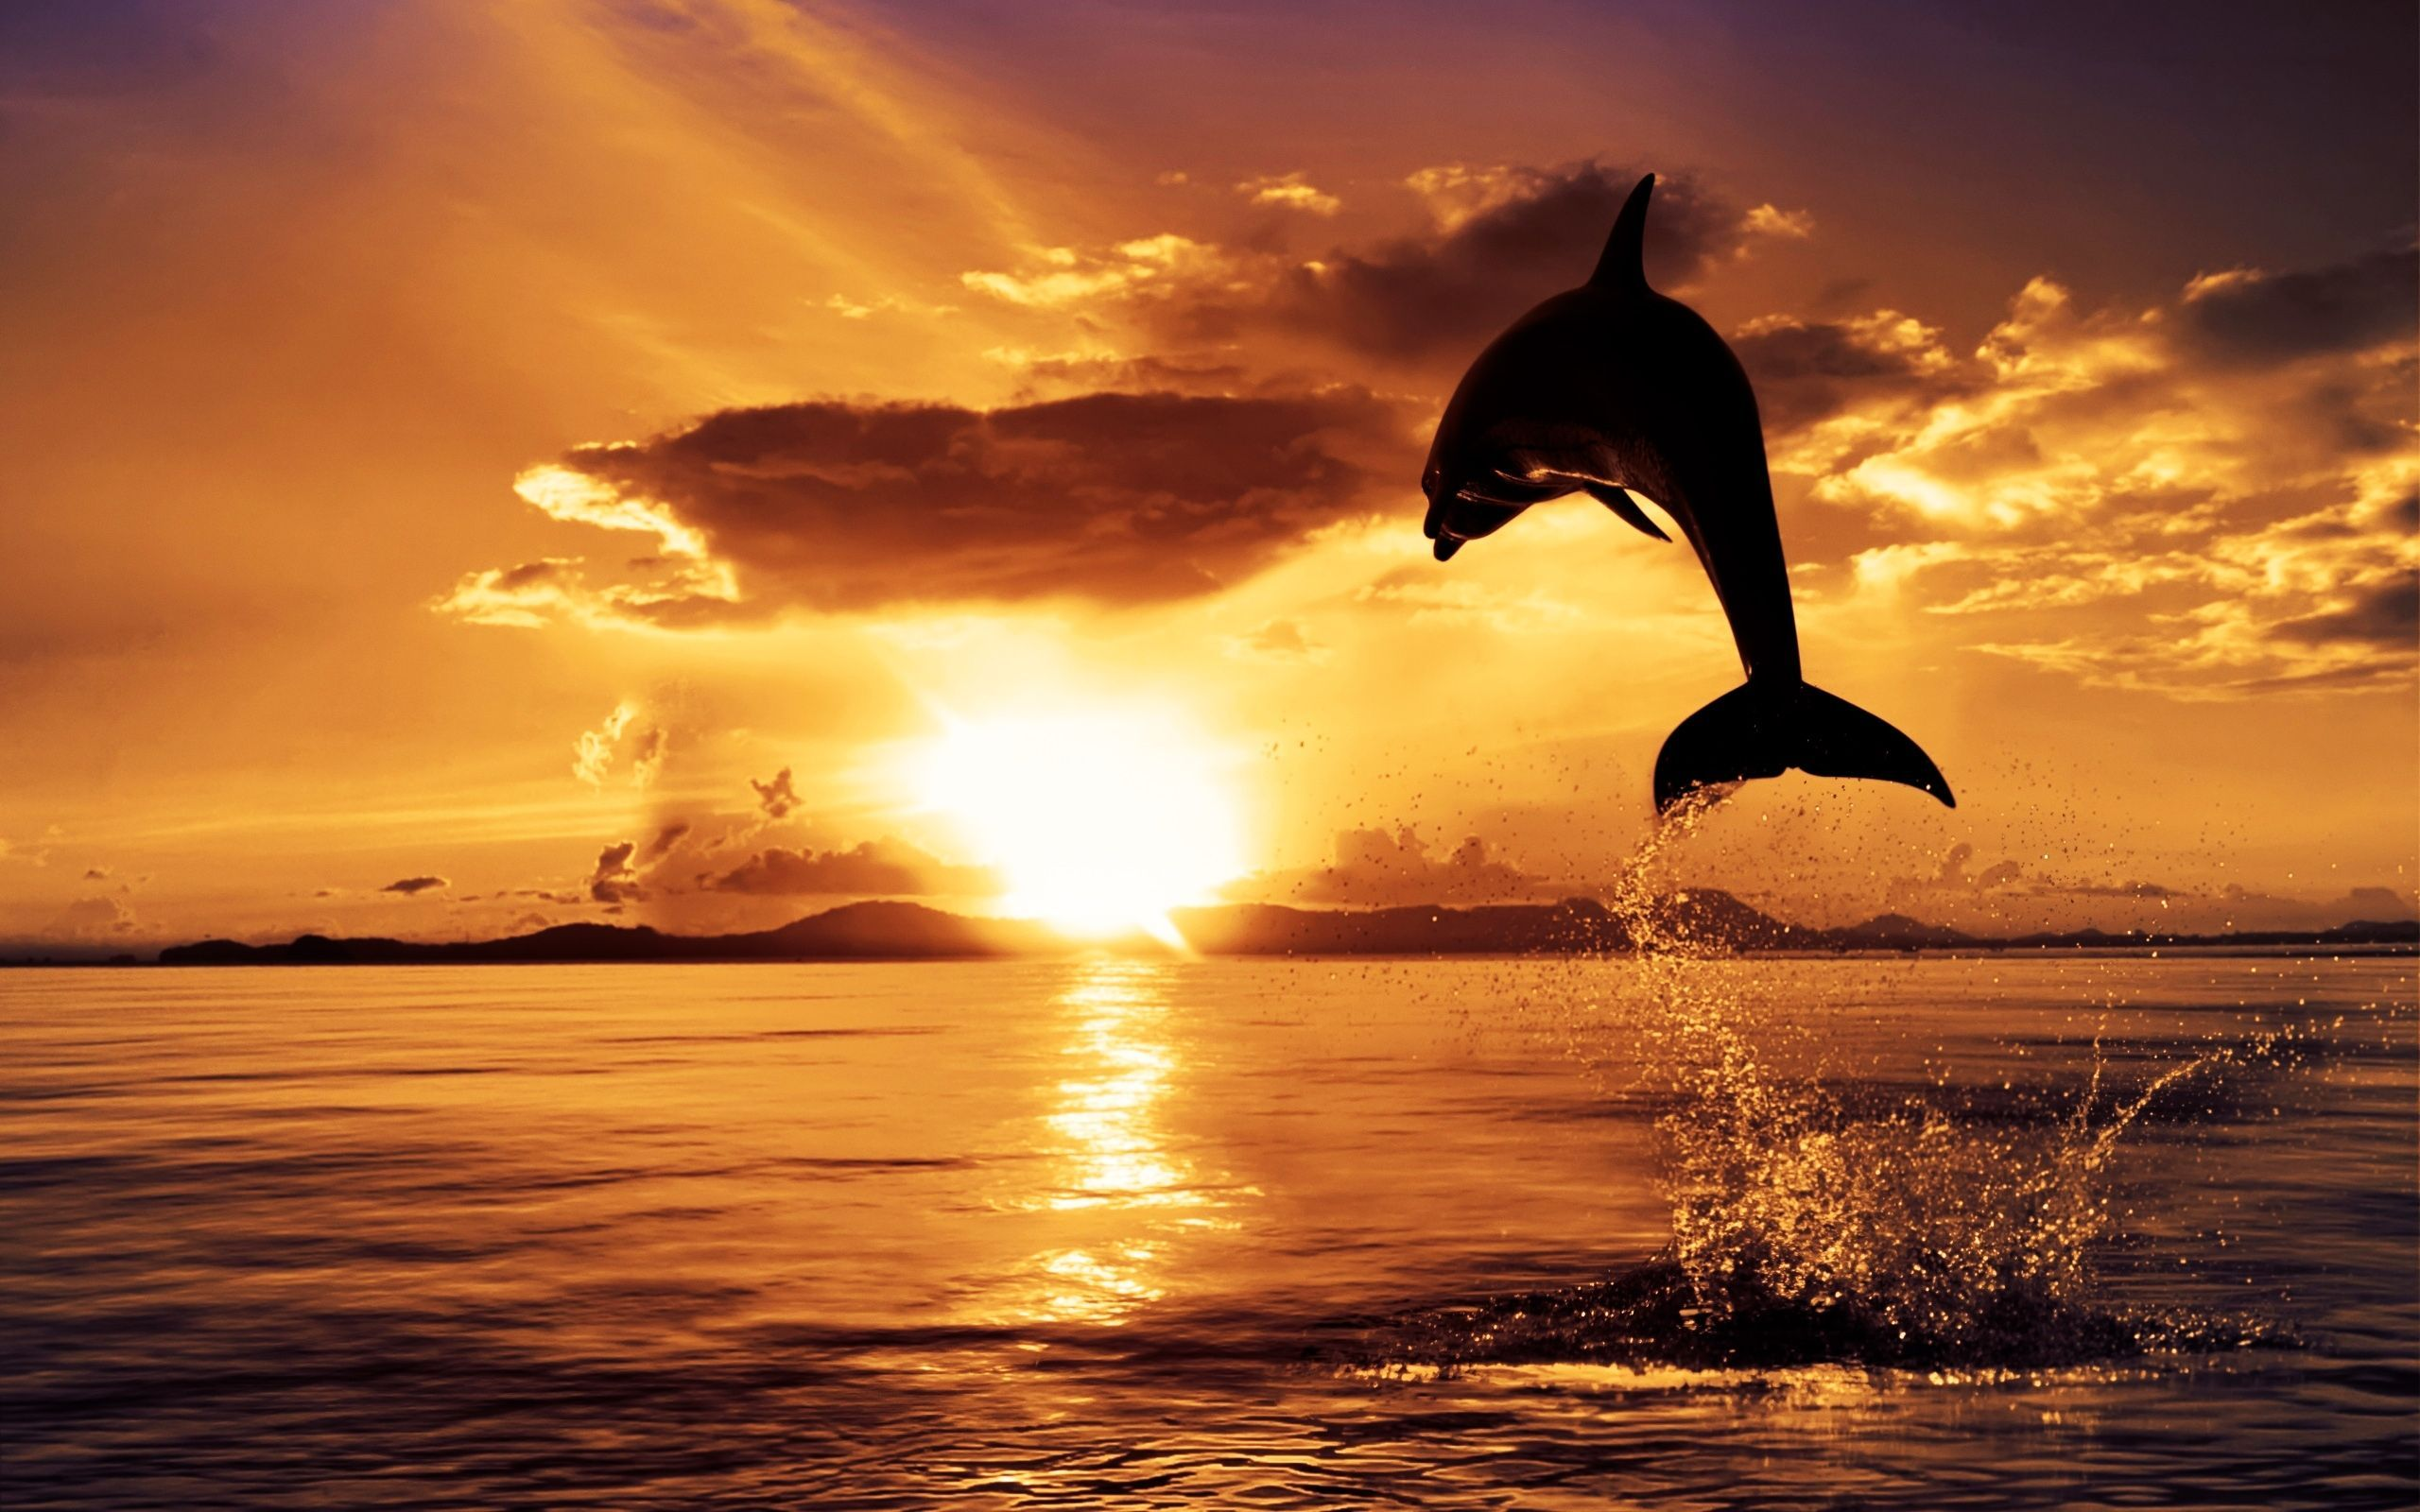 Dolphin Sunset HD Wallpaper | Nature Wallpapers